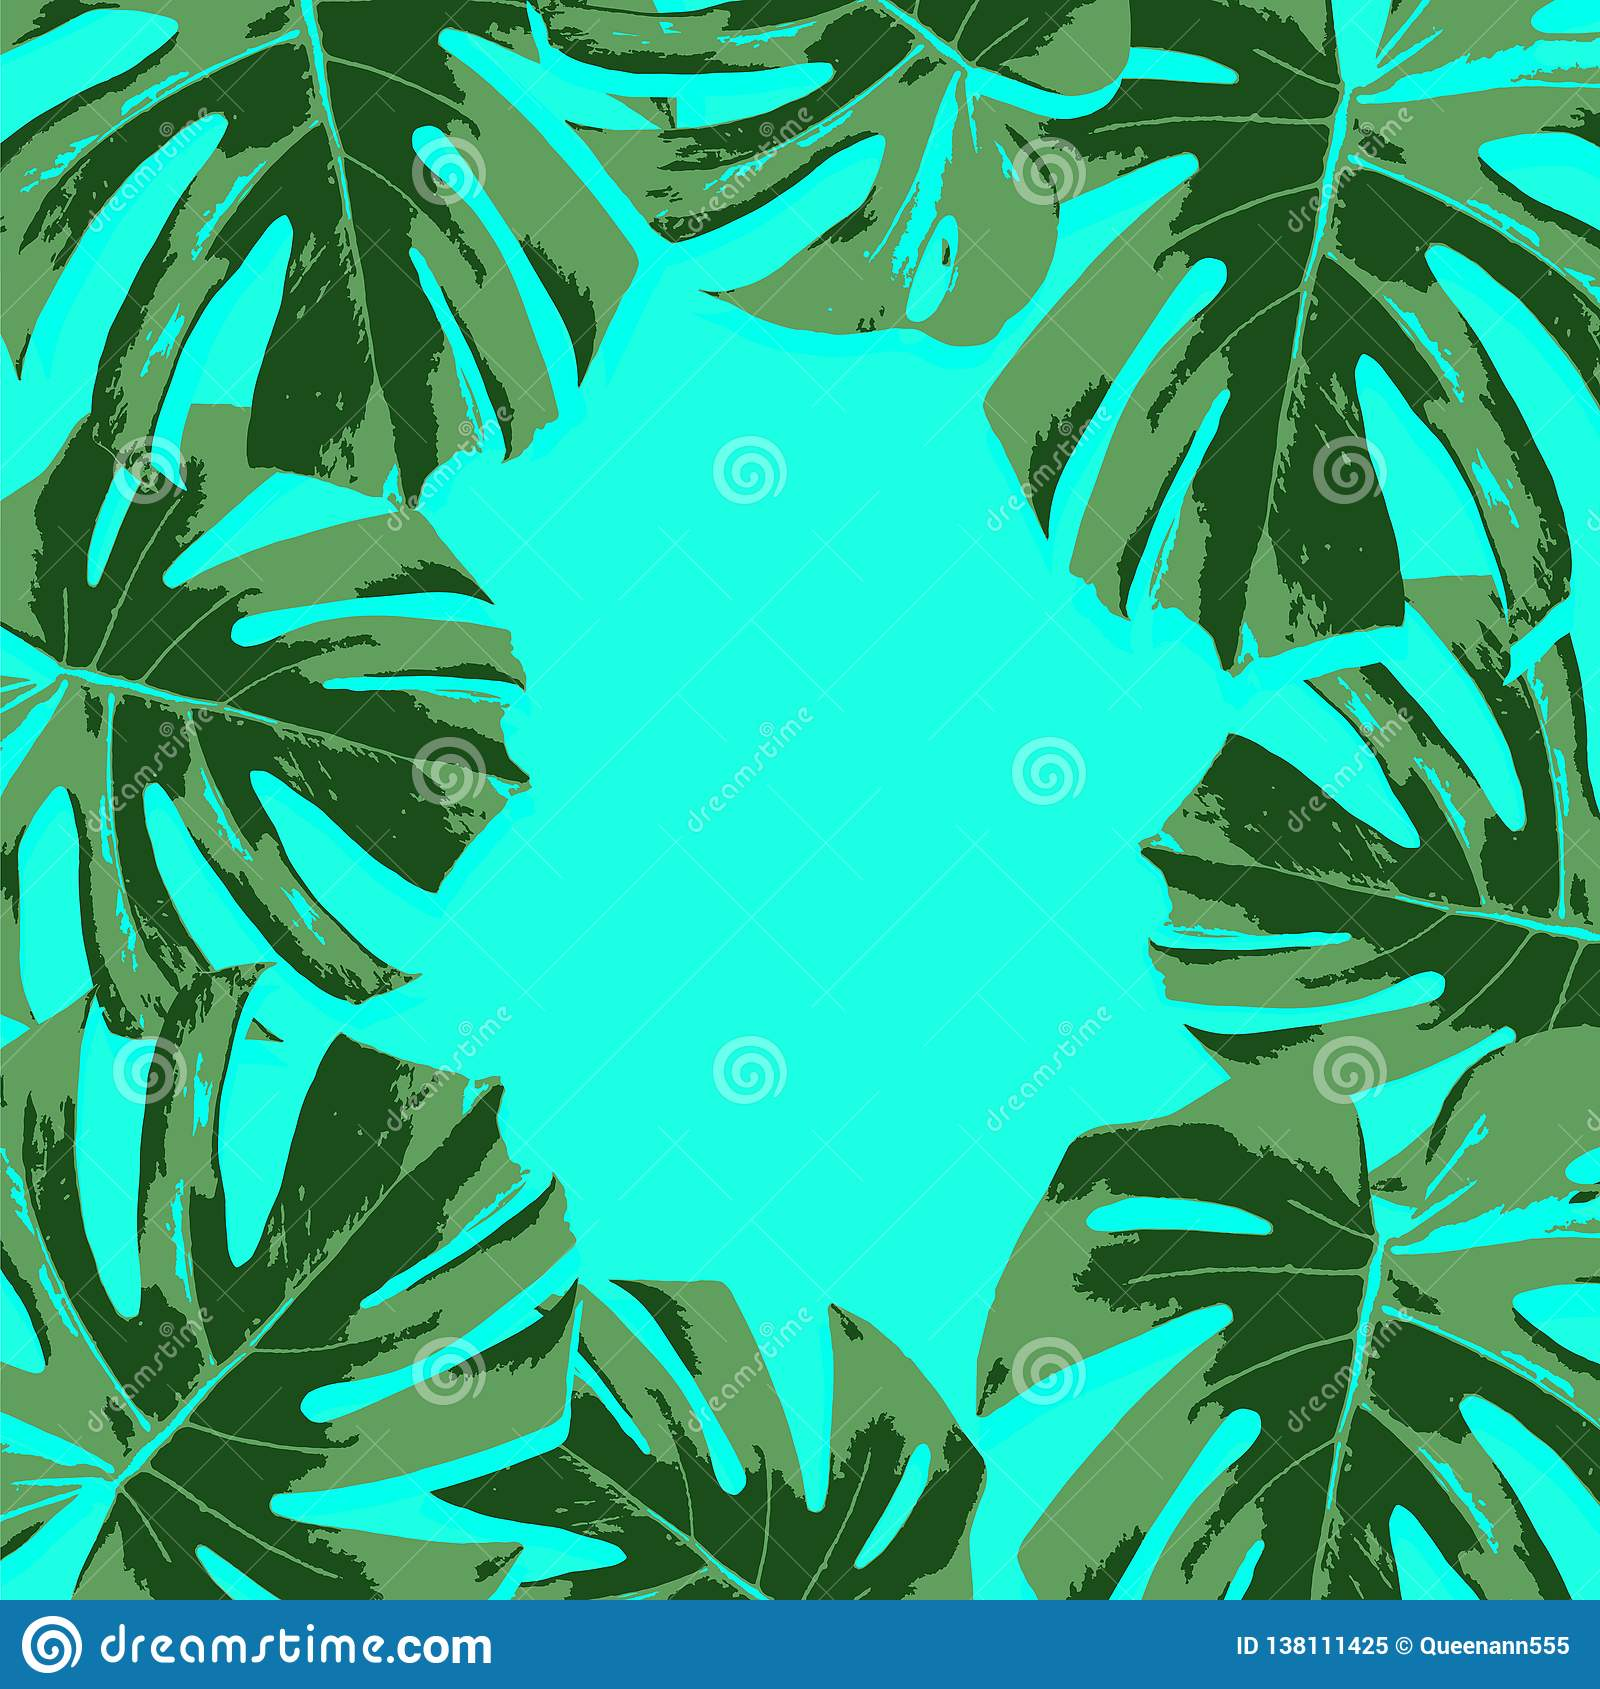 Vector Tropical Green Palm Leaves On Turquoise Background Stock Illustration Illustration Of Hawaii Background 138111425 Download premium vector of round golden frame on a tropical background vector by marinemynt about palm, palm leaf, palm tree, green. https www dreamstime com vector tropical green palm leaves turquoise background vector tropical green leaves turquoise background image138111425